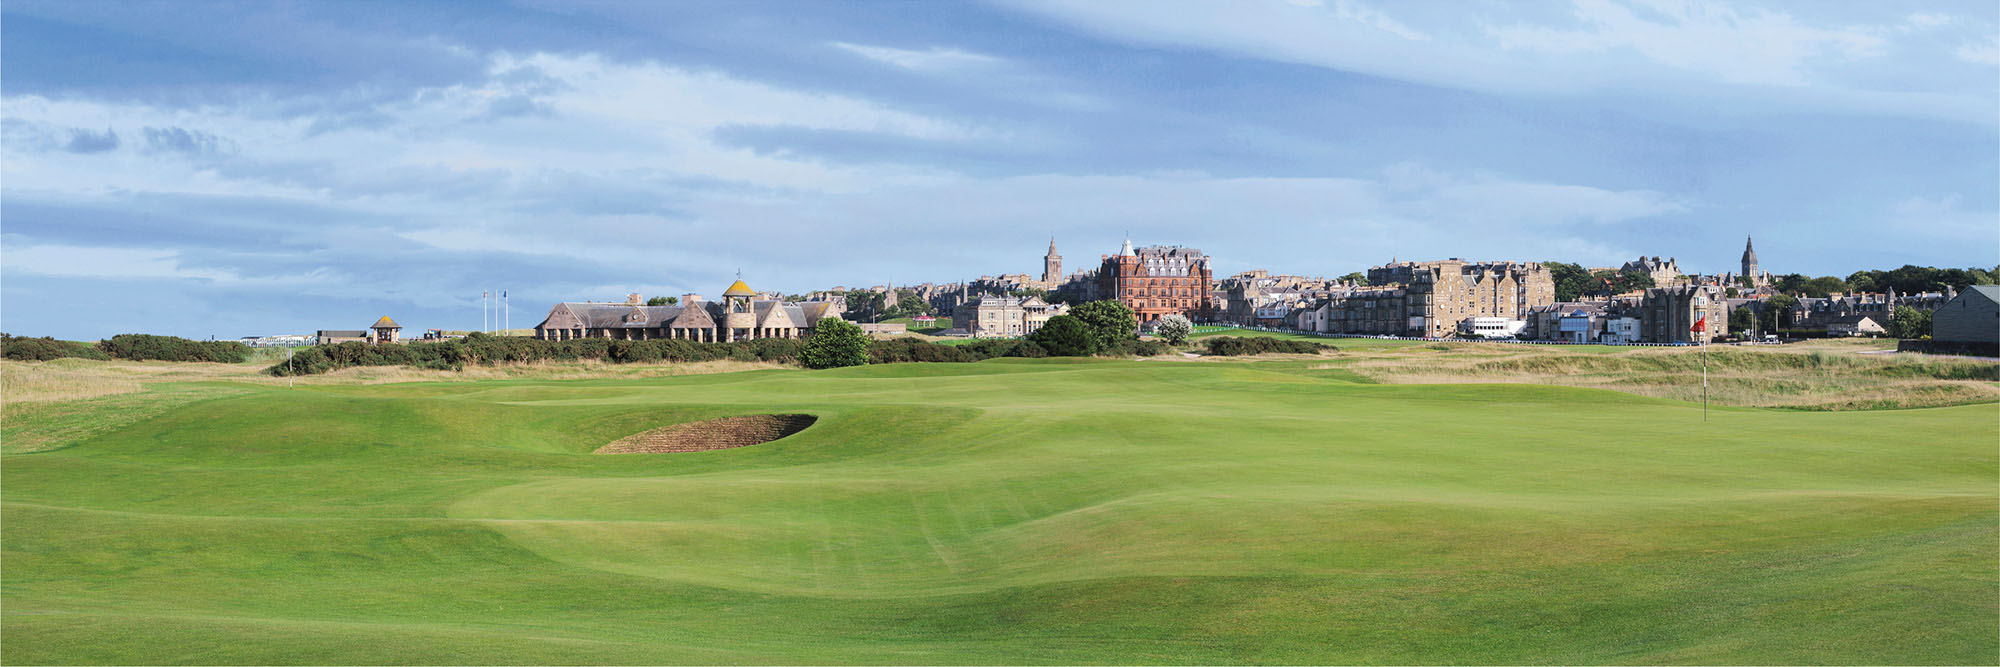 Golf Course Image - St Andrews Old Course No. 16